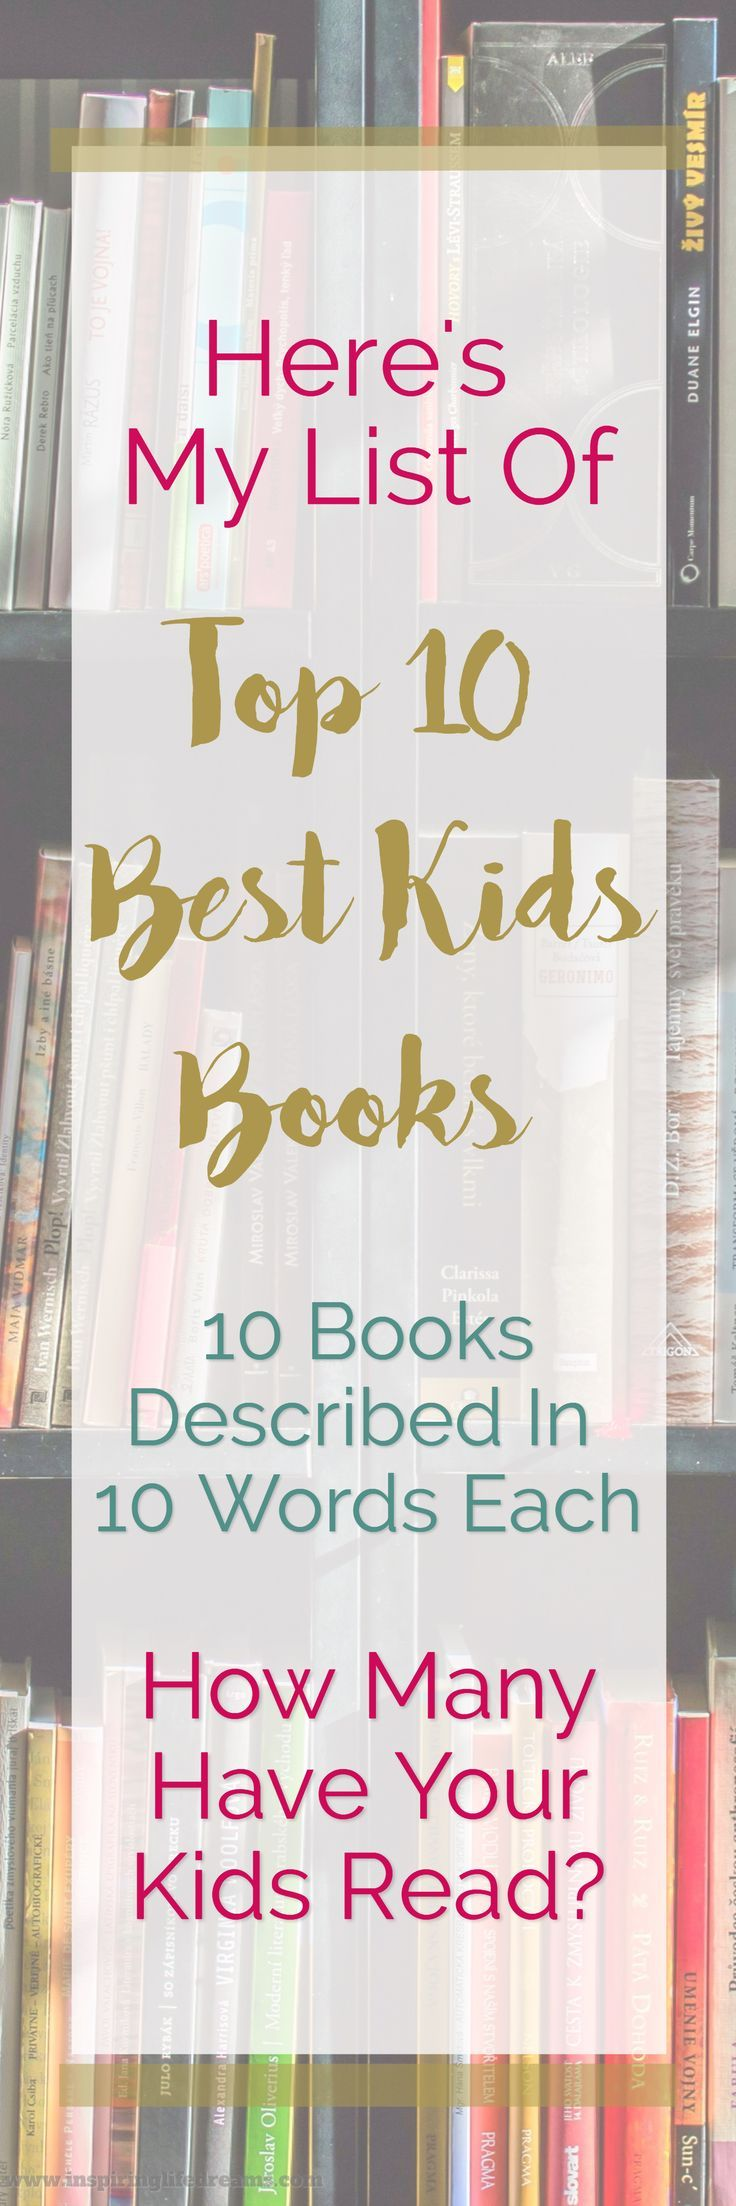 Top 10  Best Kids Books - Best Children's Books - Must Read Books - 10 Books Described In  10 Words Each - How Many Have Your Kids Read? - Includes WONDER By RJ Palacio - Paulo Coelho - Harry Potter and other classics